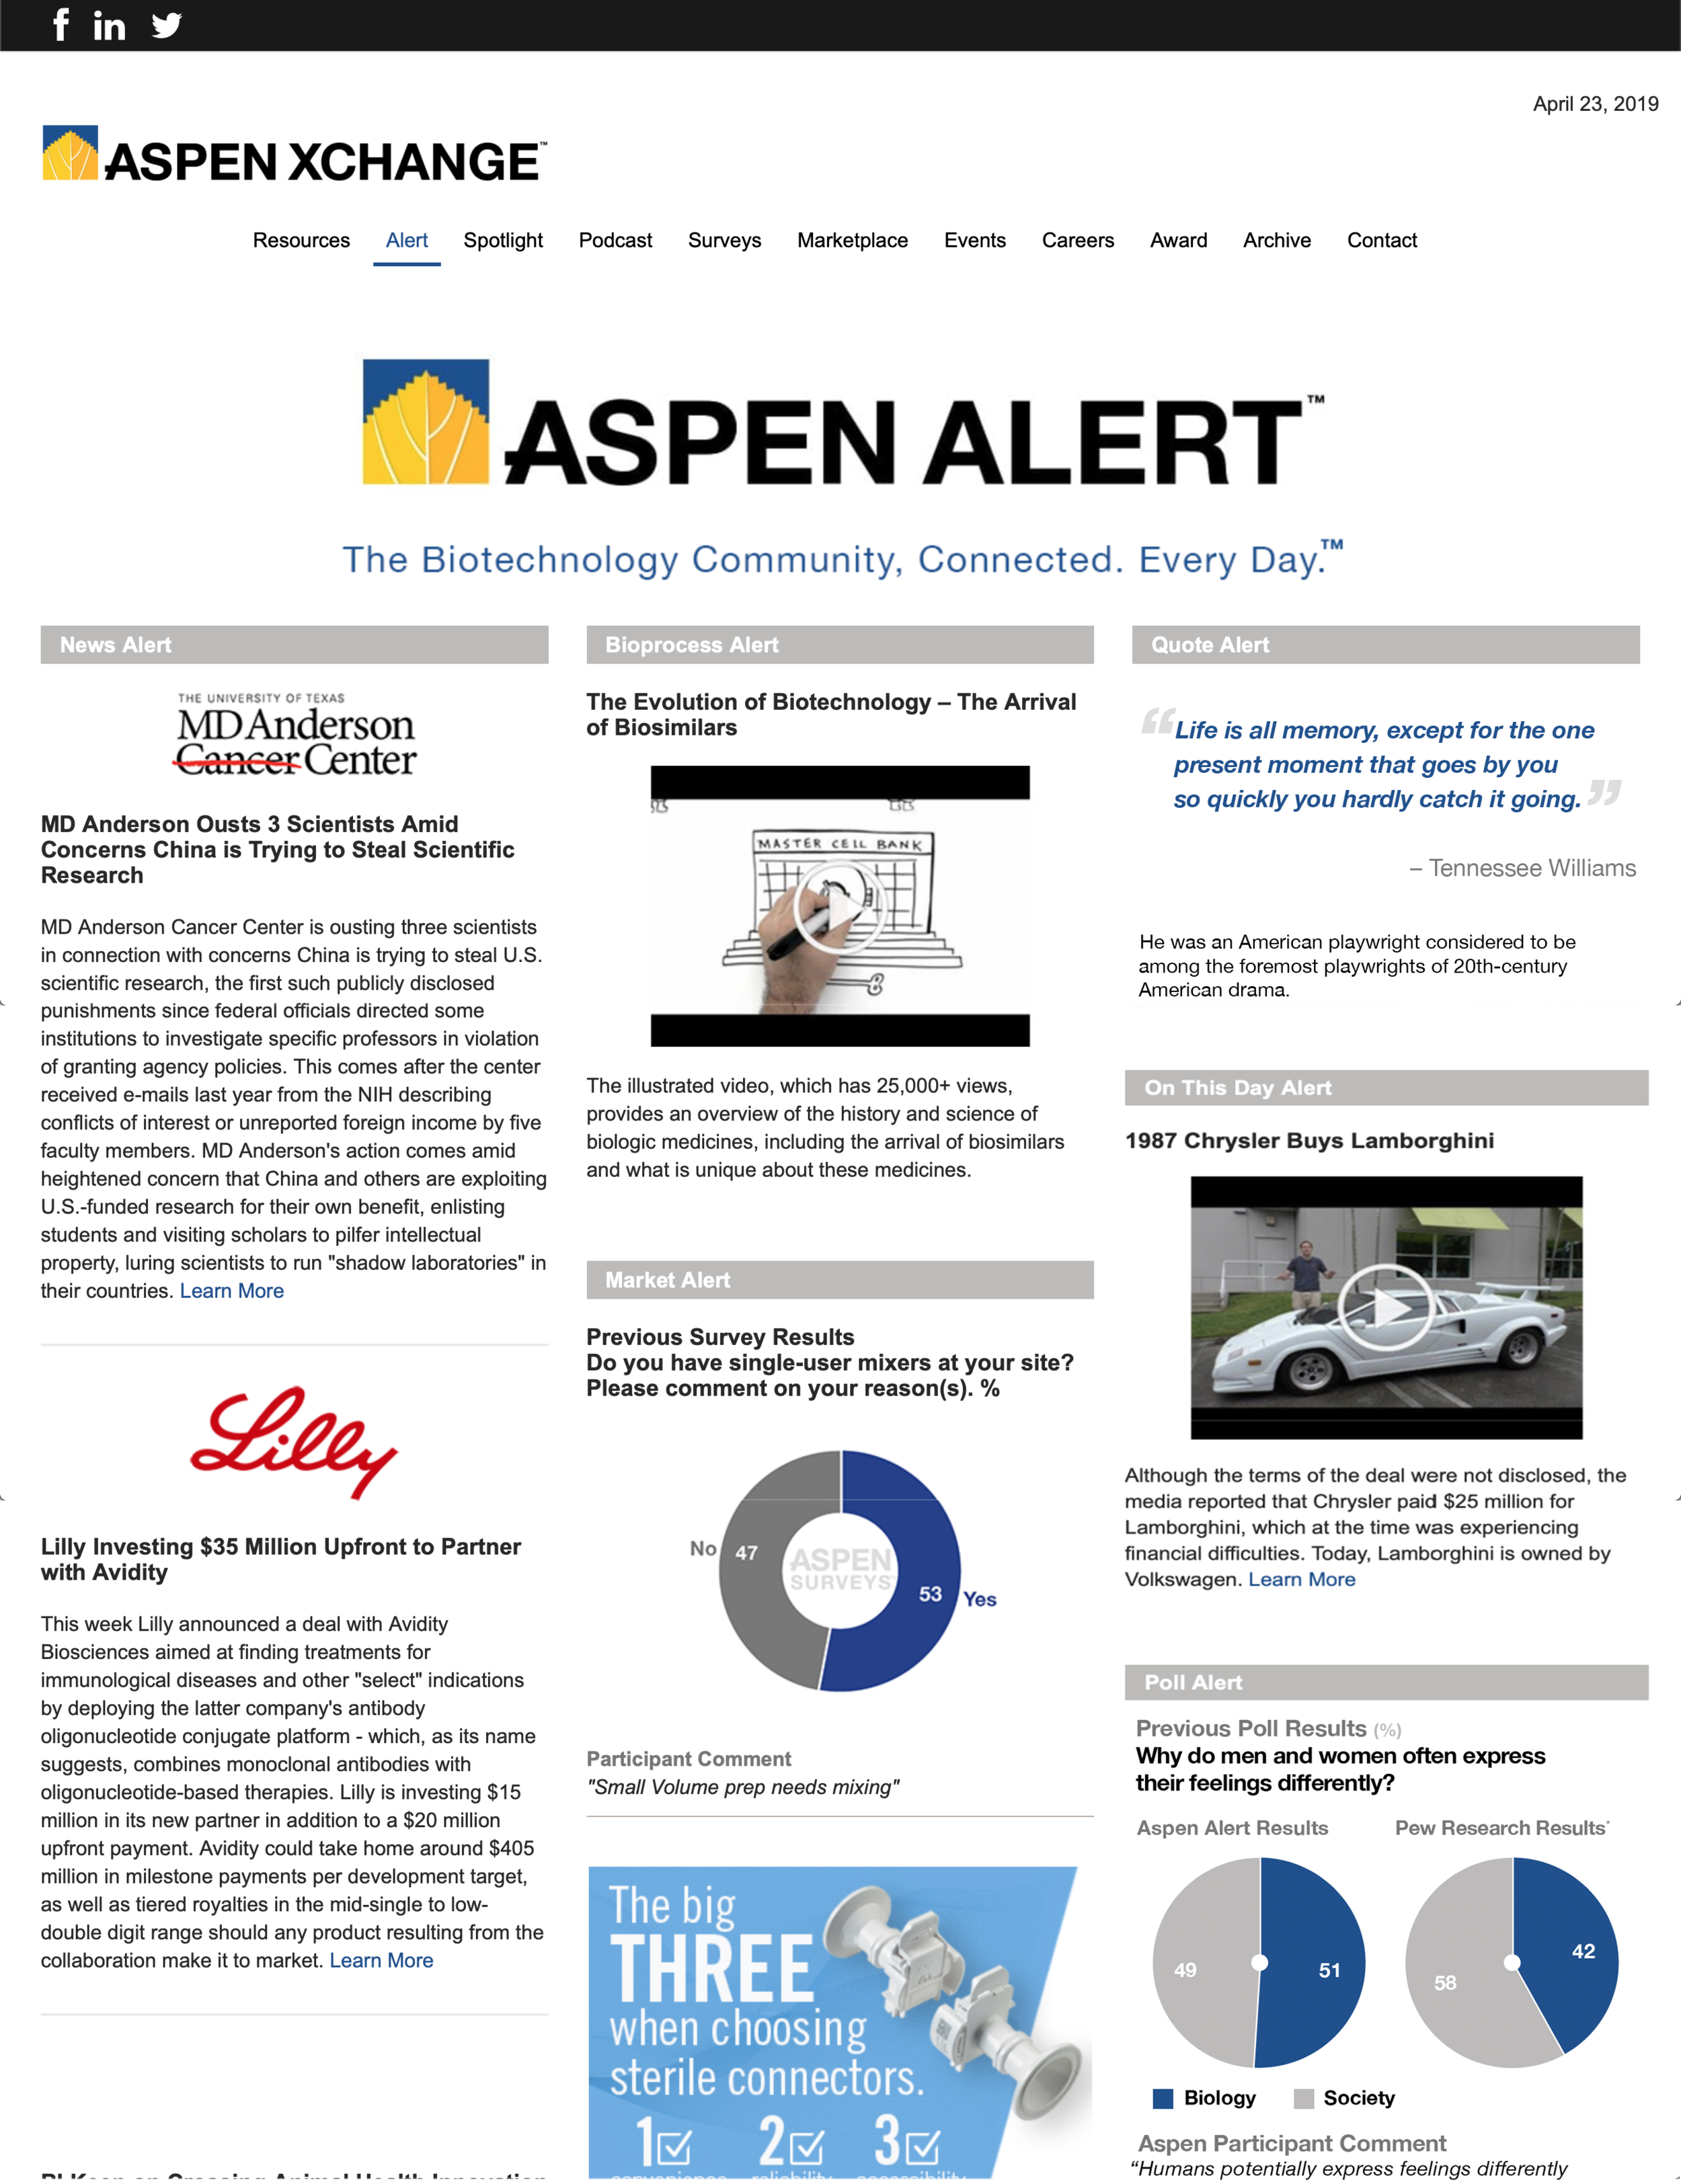 The Aspen Alert newsletter content as it appears within the Aspen Xchange. News and other articles update daily to match the latest email edition.